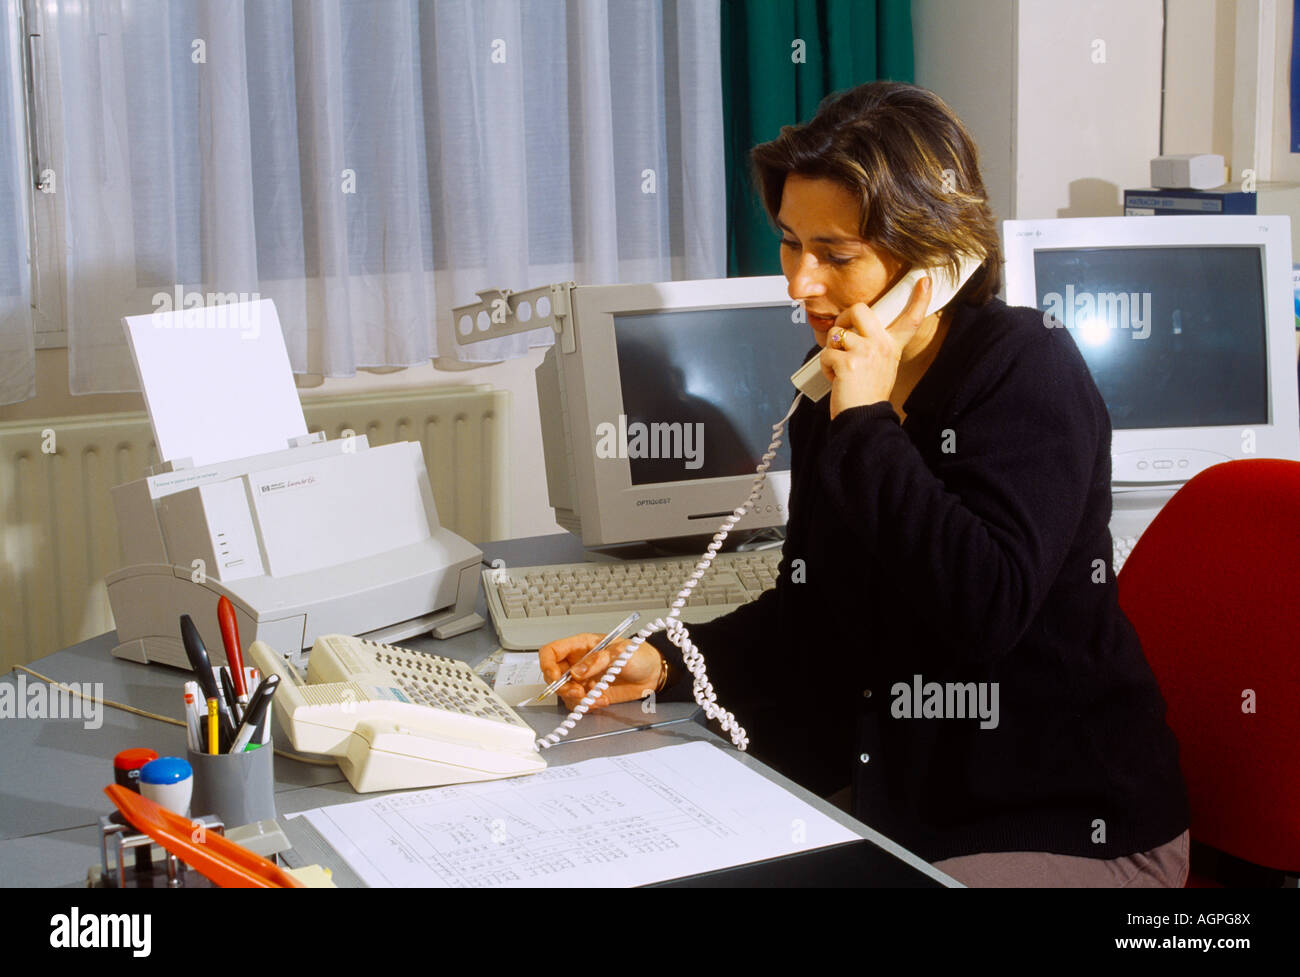 Telephone Operator Switchboard Banque d'image et photos - Alamy